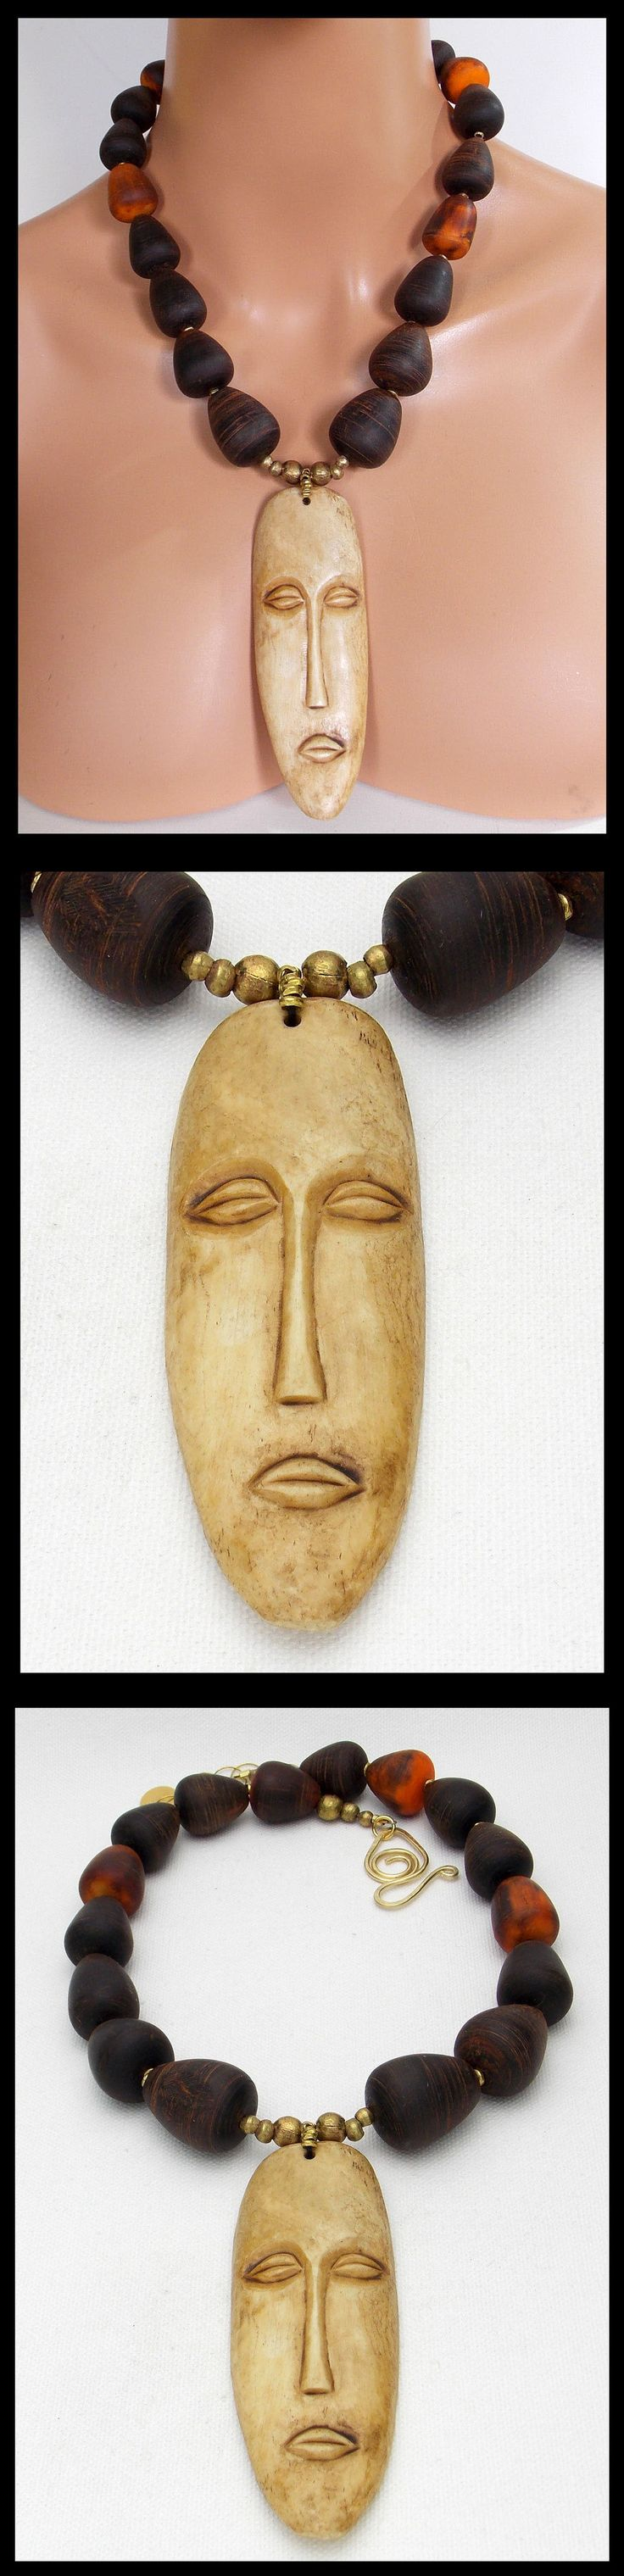 Necklaces and Pendants 98481: Lega Mask - Handcarved African Mask - Moroccan Bovine Horn Spindles Necklace BUY IT NOW ONLY: $198.0